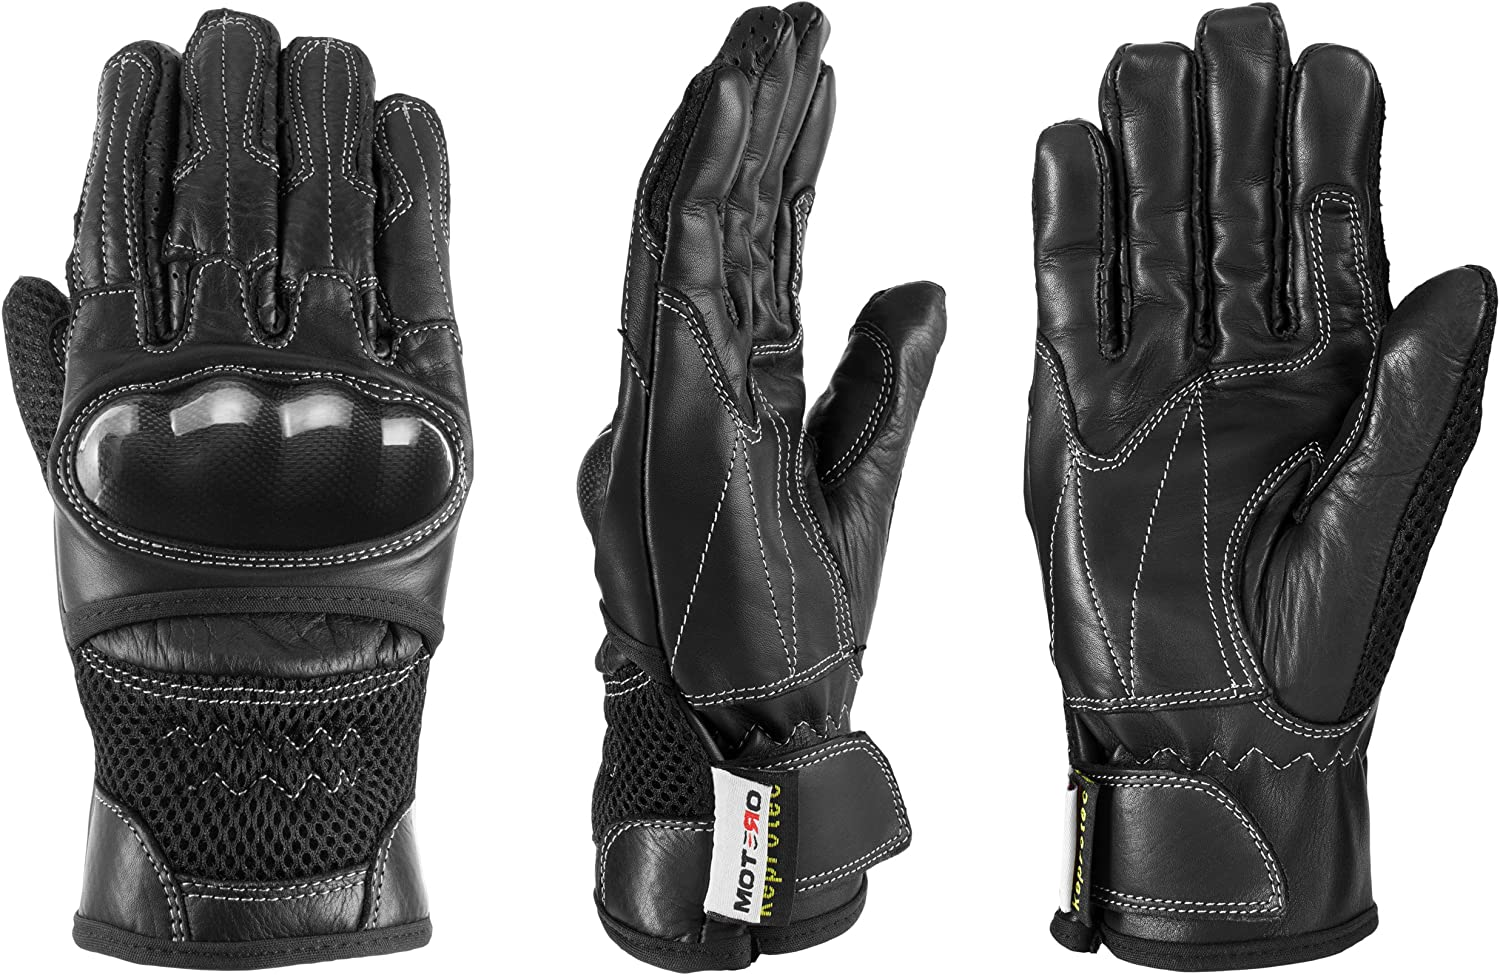 Best Motorcycle Gloves For Summer: Top 10 Review (2021) 9